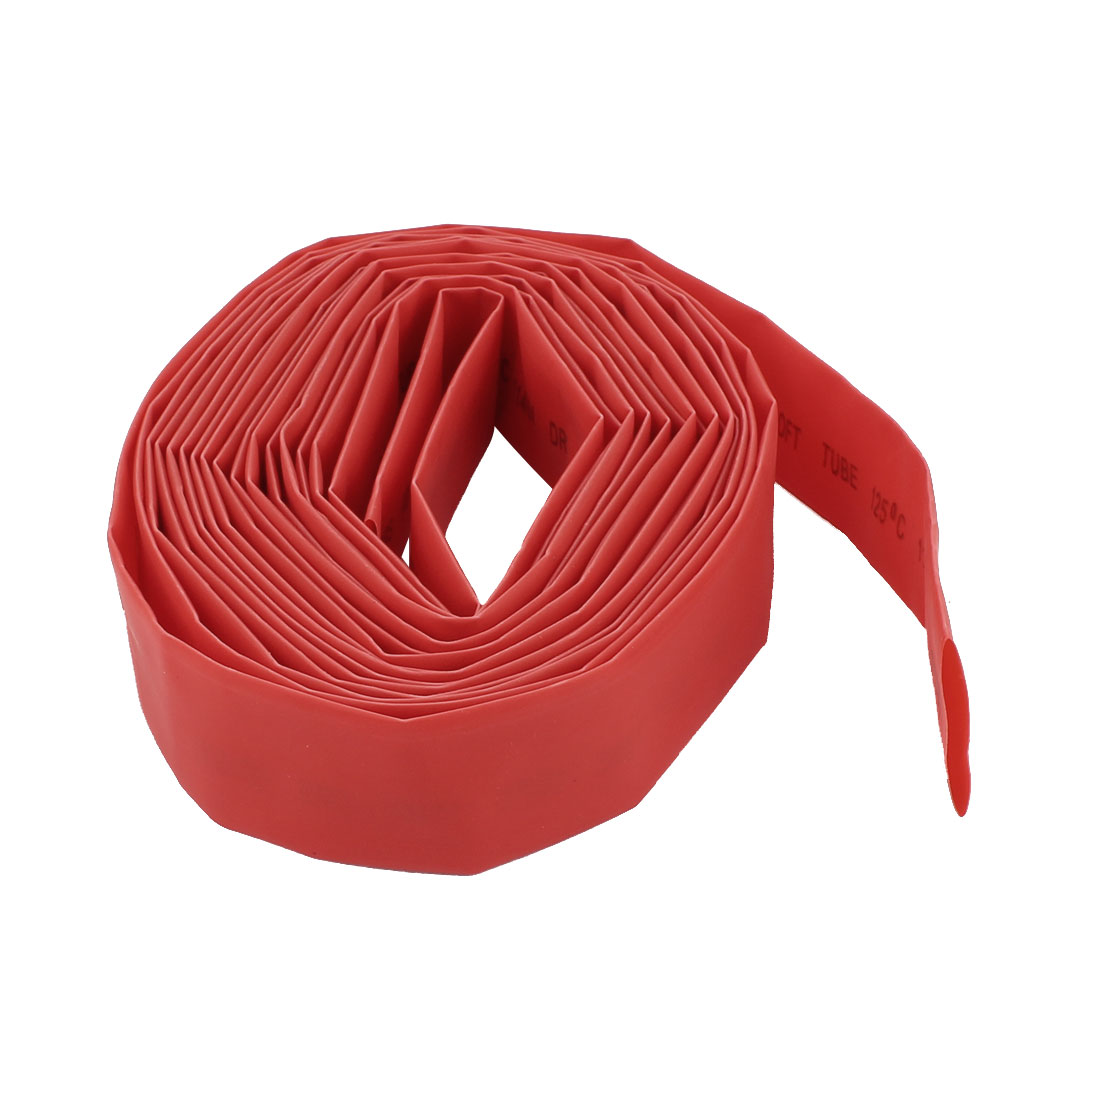 16mm Diameter Heat Shrinkable Tube Shrink Tubing Wire Wrap 5M 16Ft Red